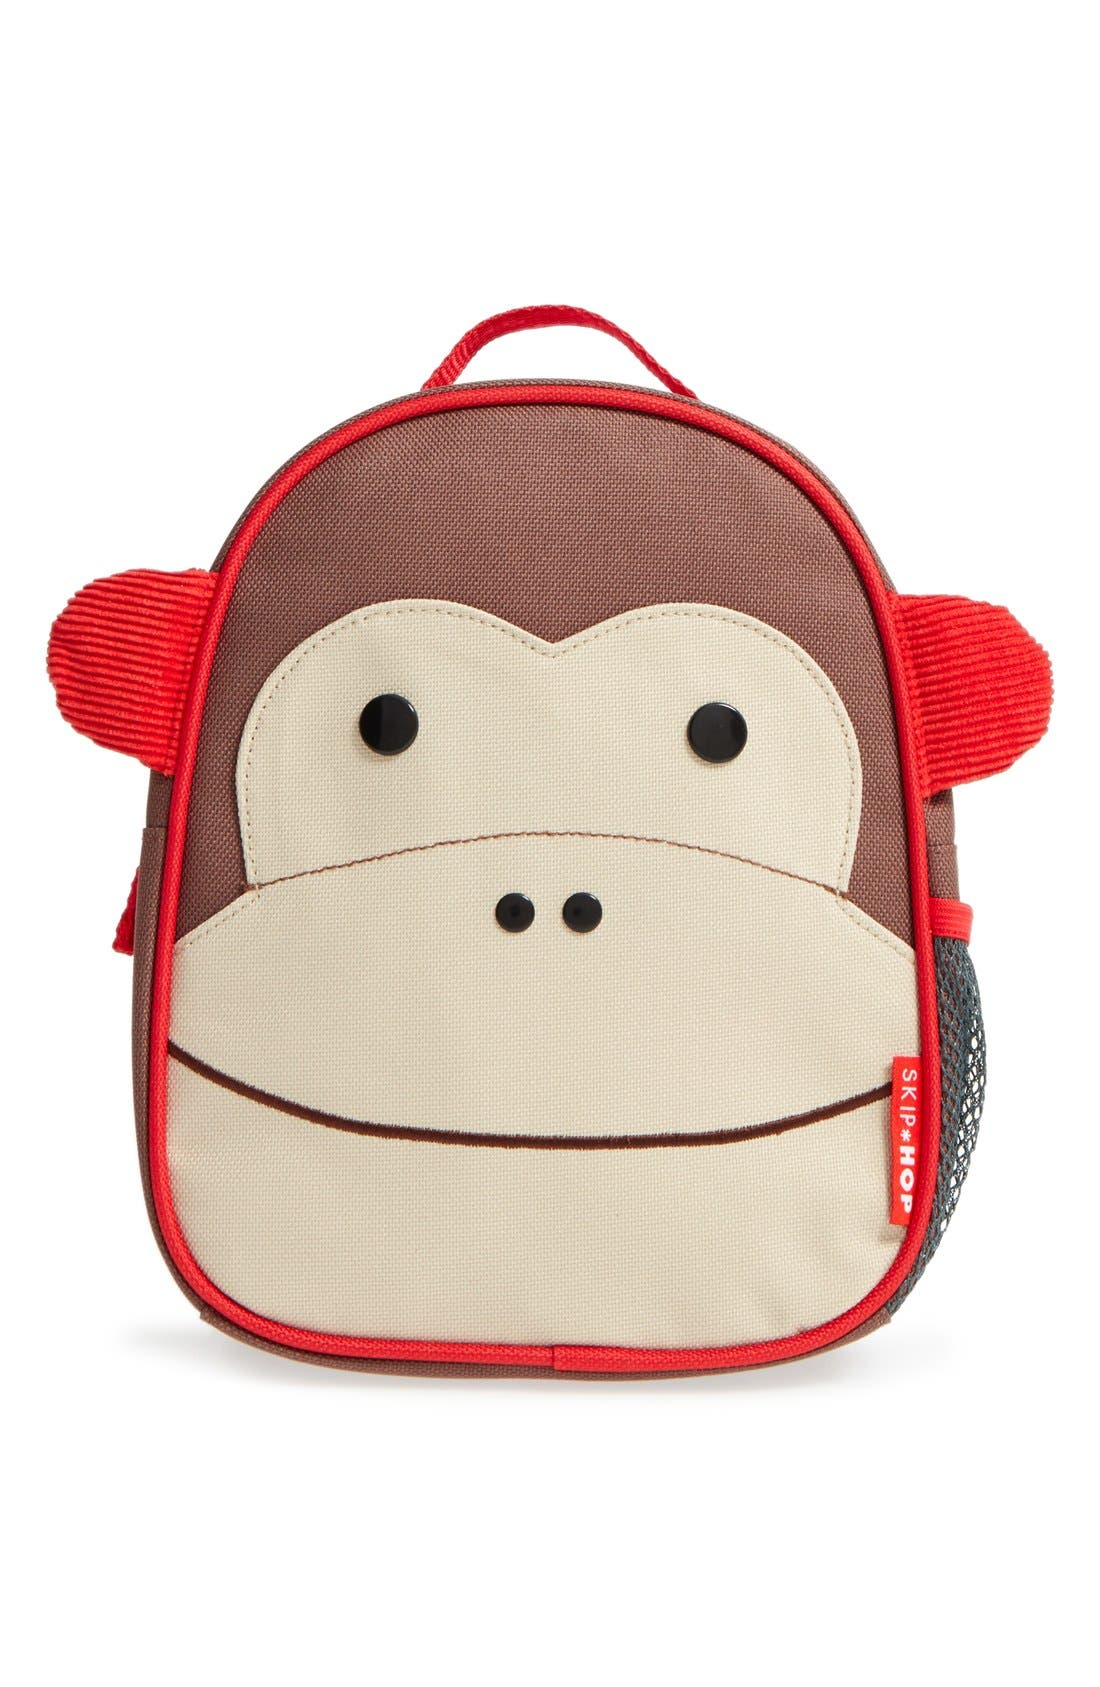 'Zoo' Safety Harness Backpack,                             Main thumbnail 1, color,                             MONKEY